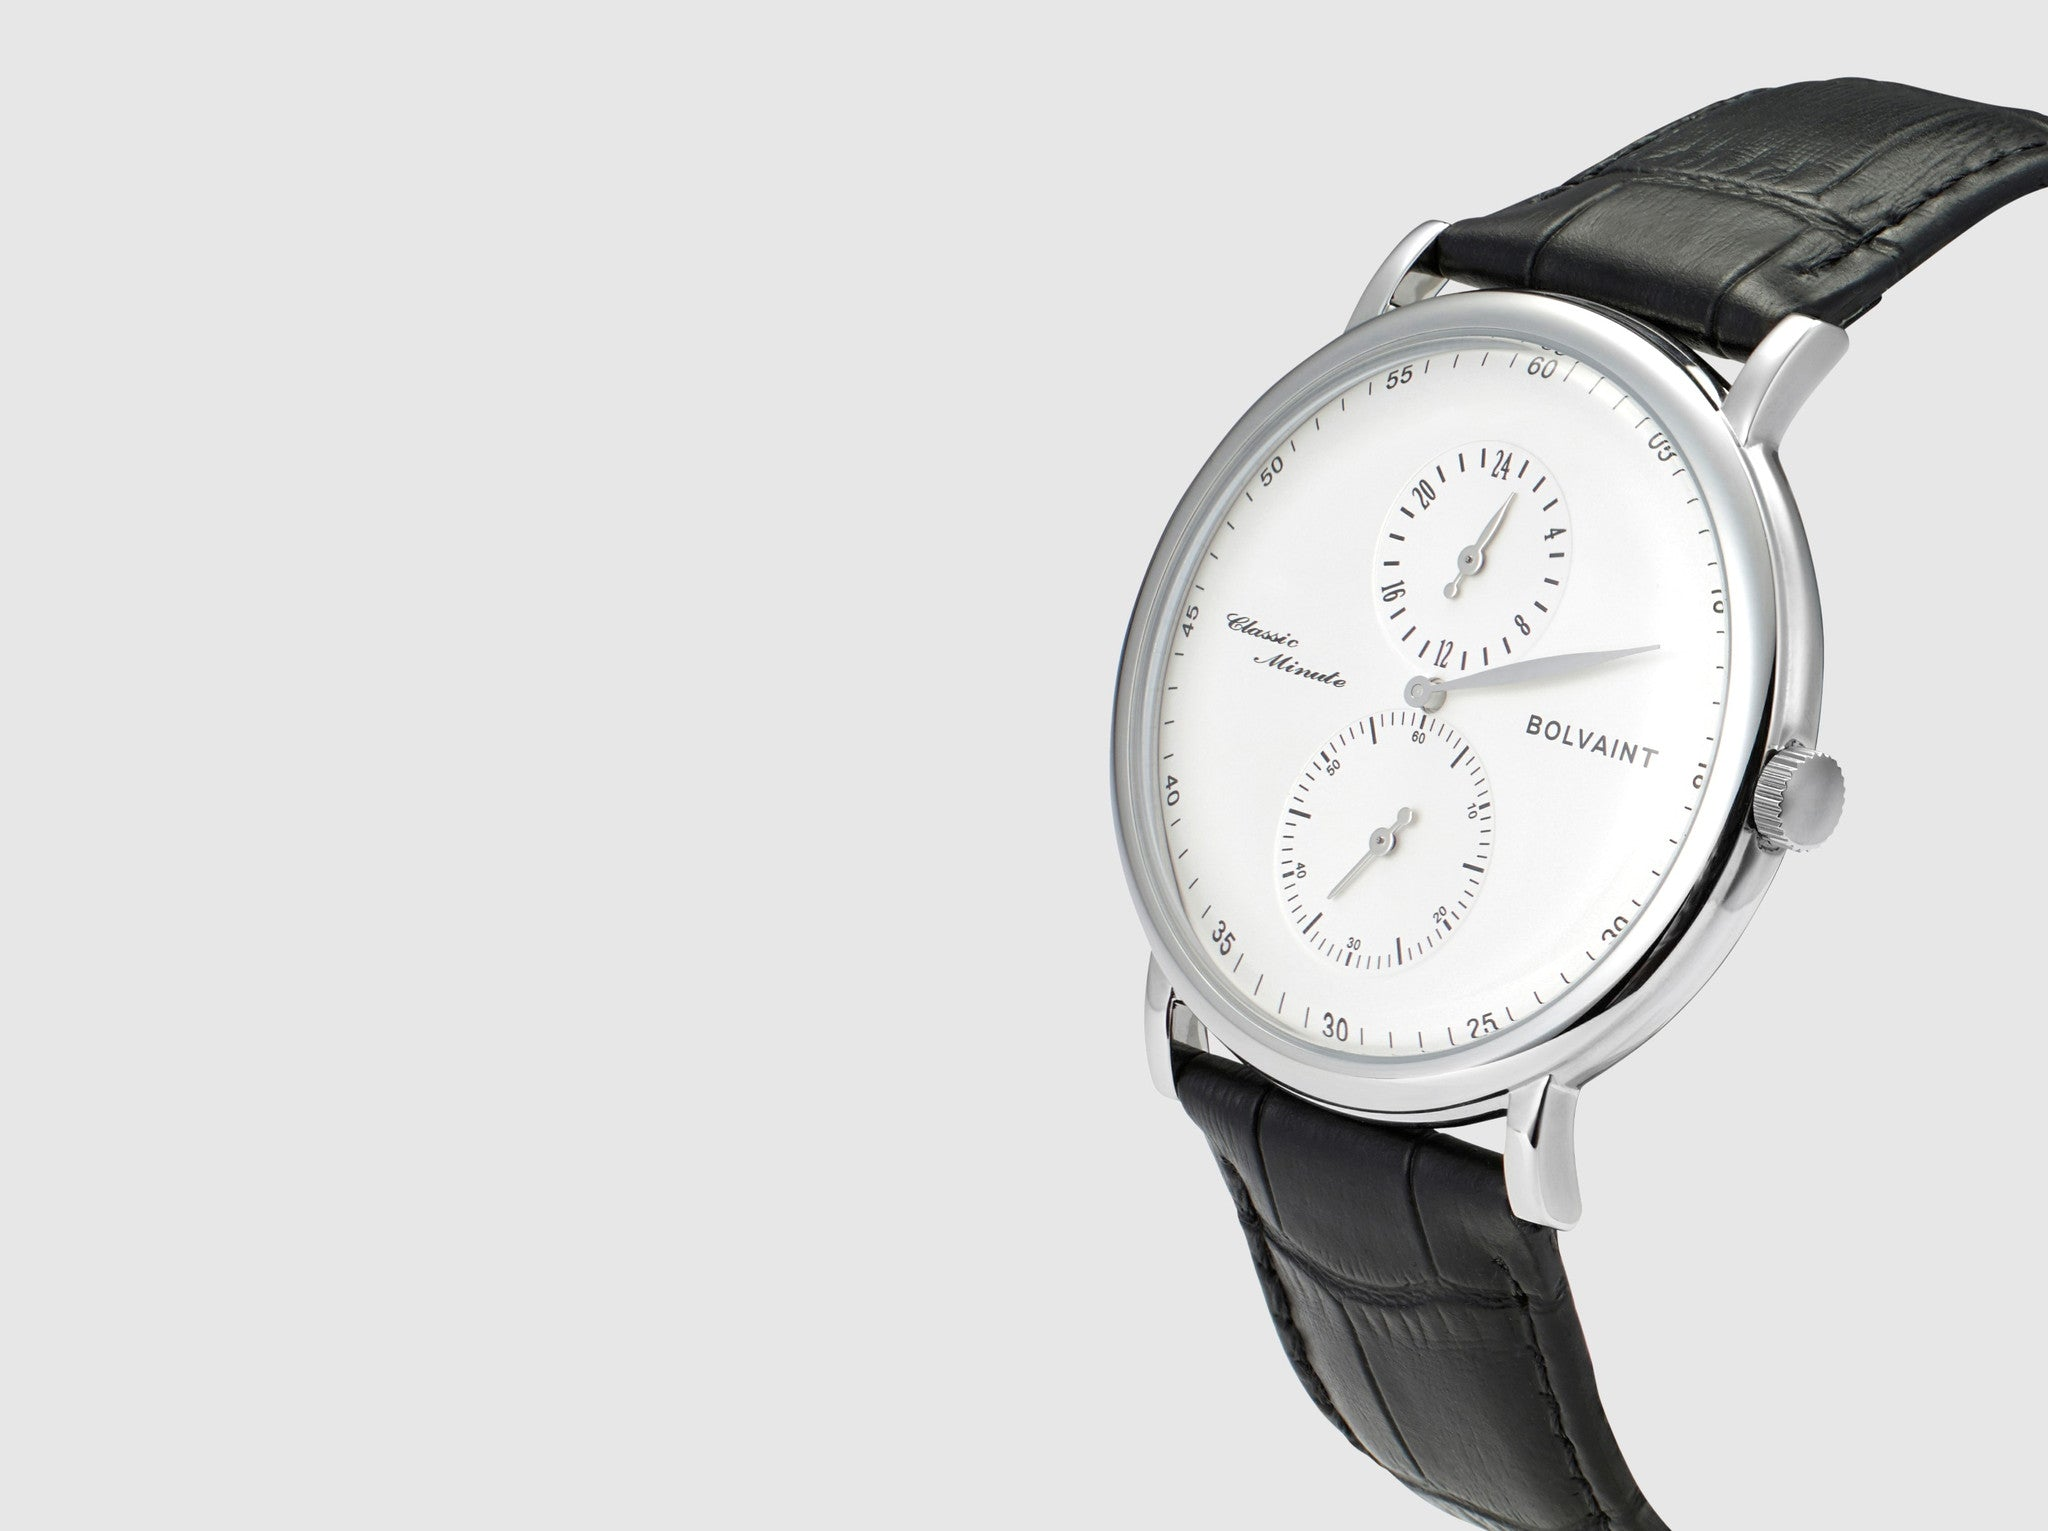 The Bolvaint Eanes Classic Minute in White